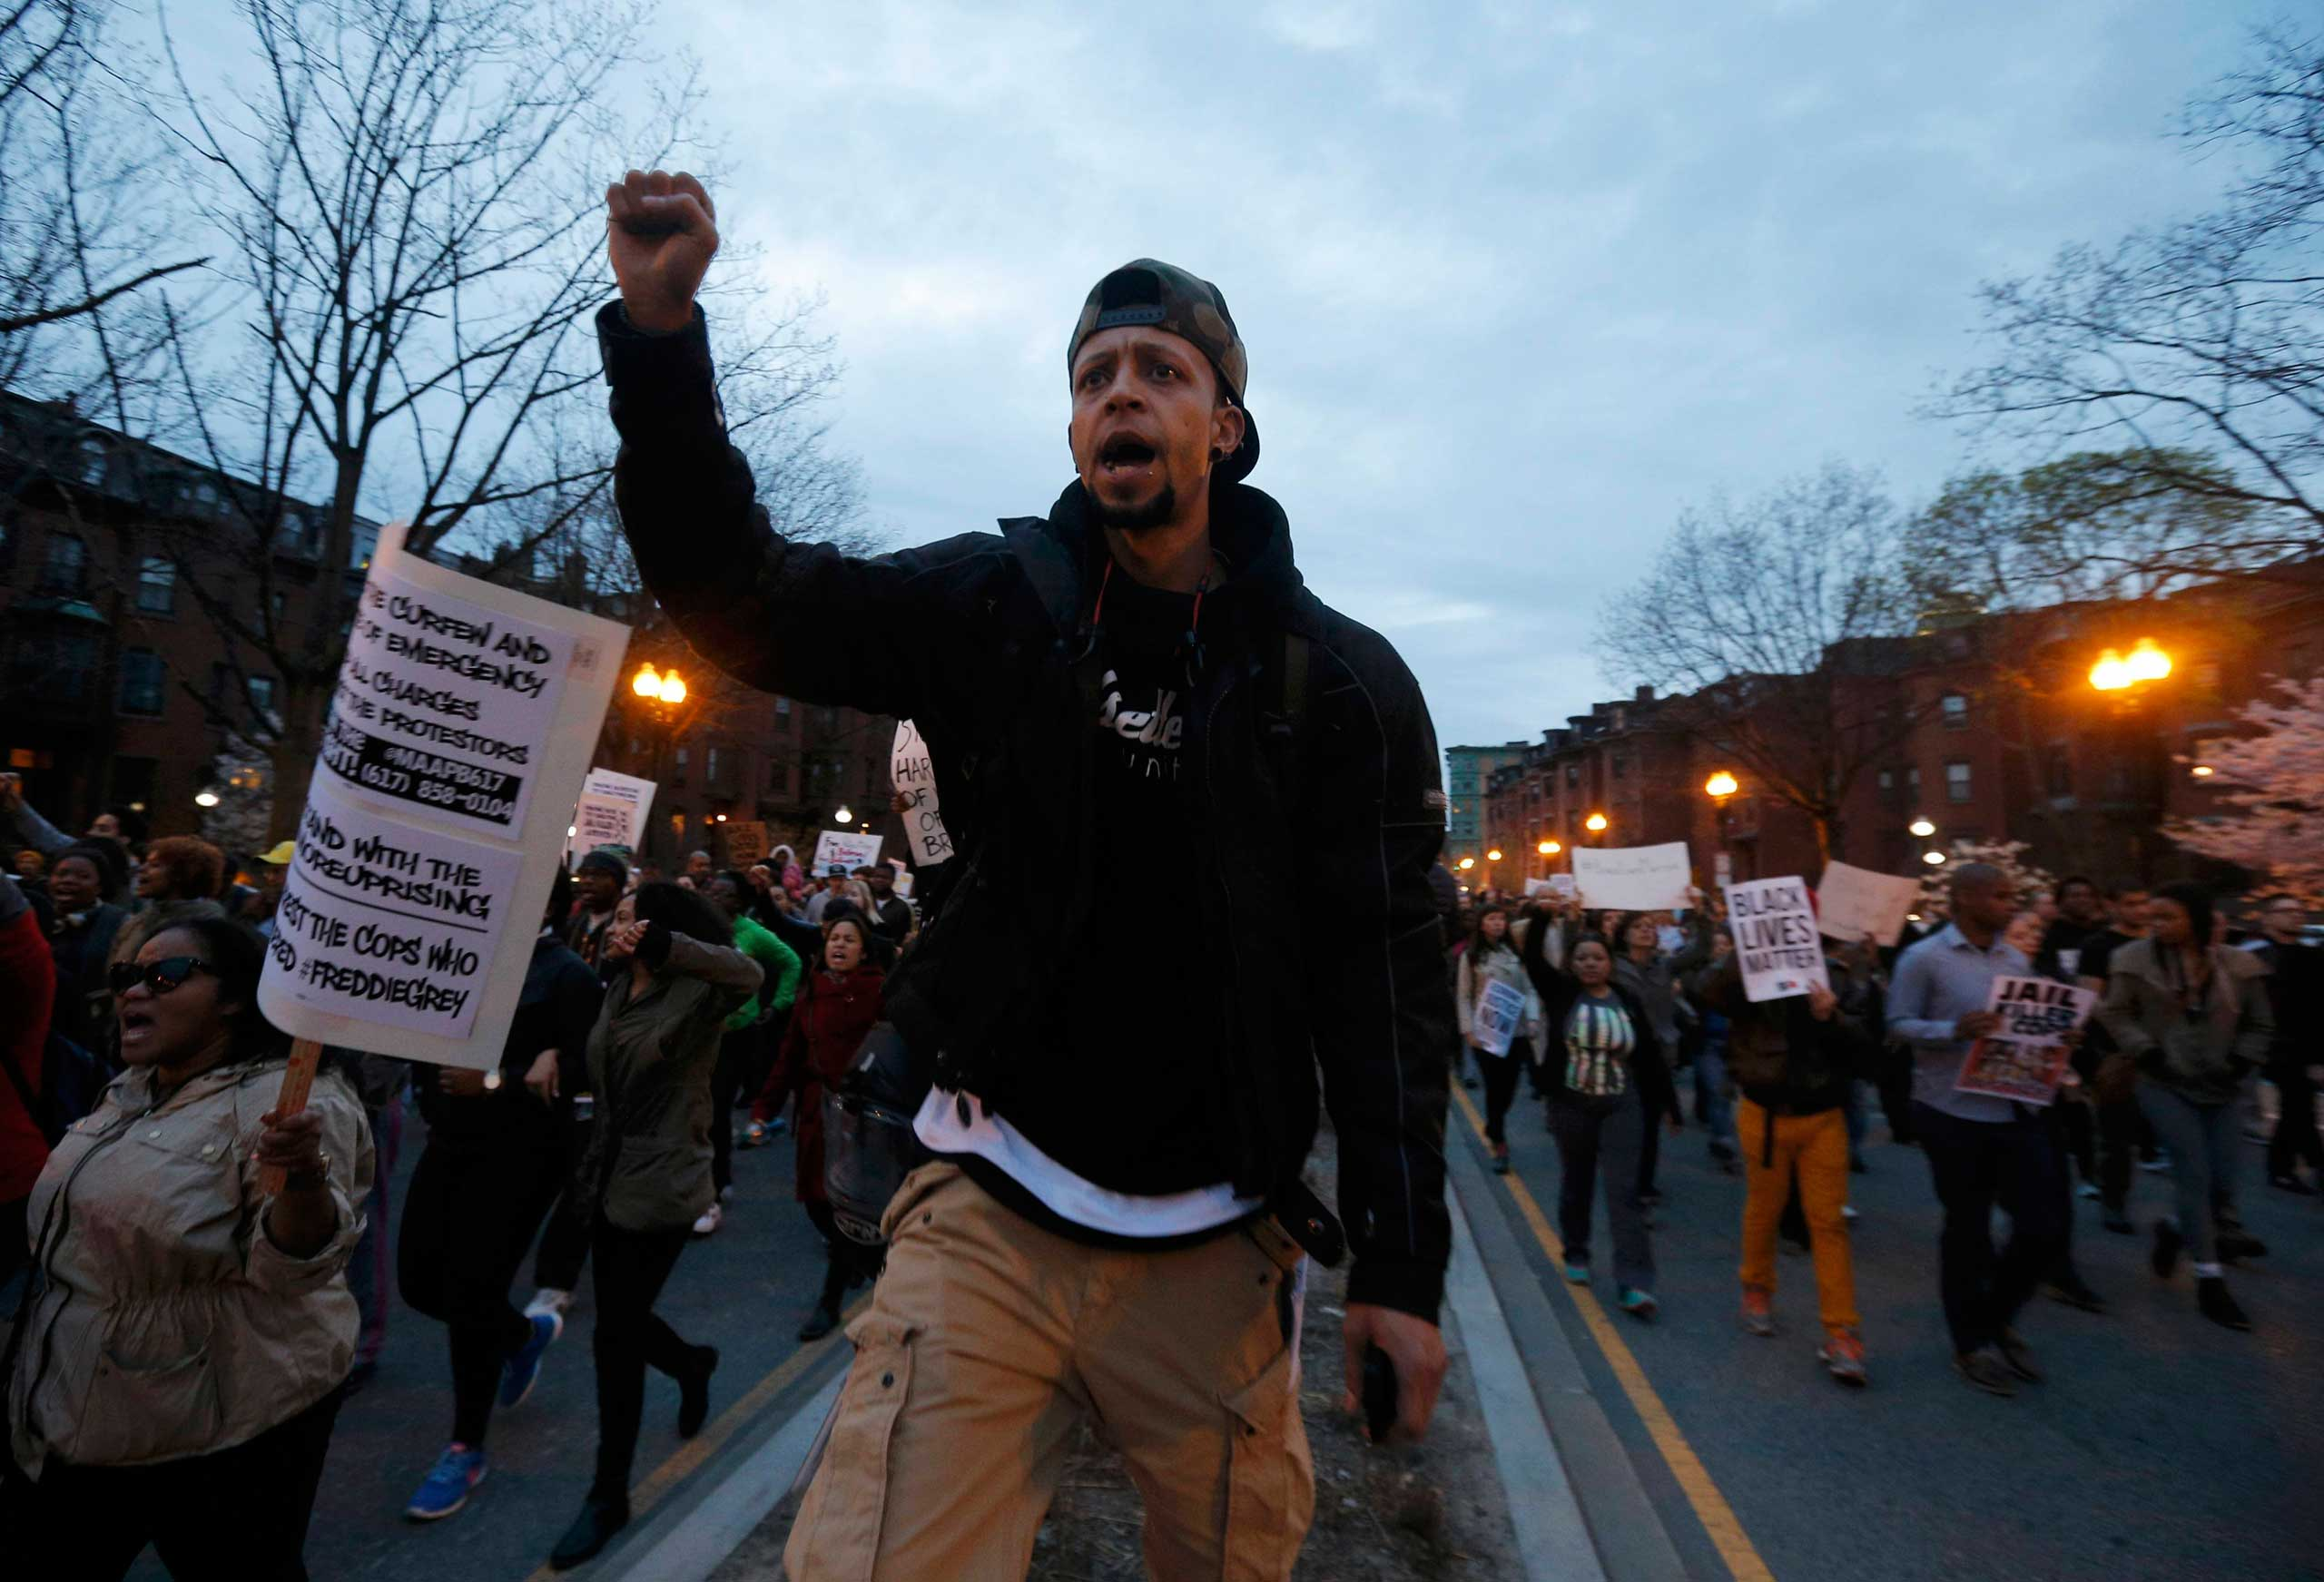 People march in protest against police violence in Boston on April 29, 2015.